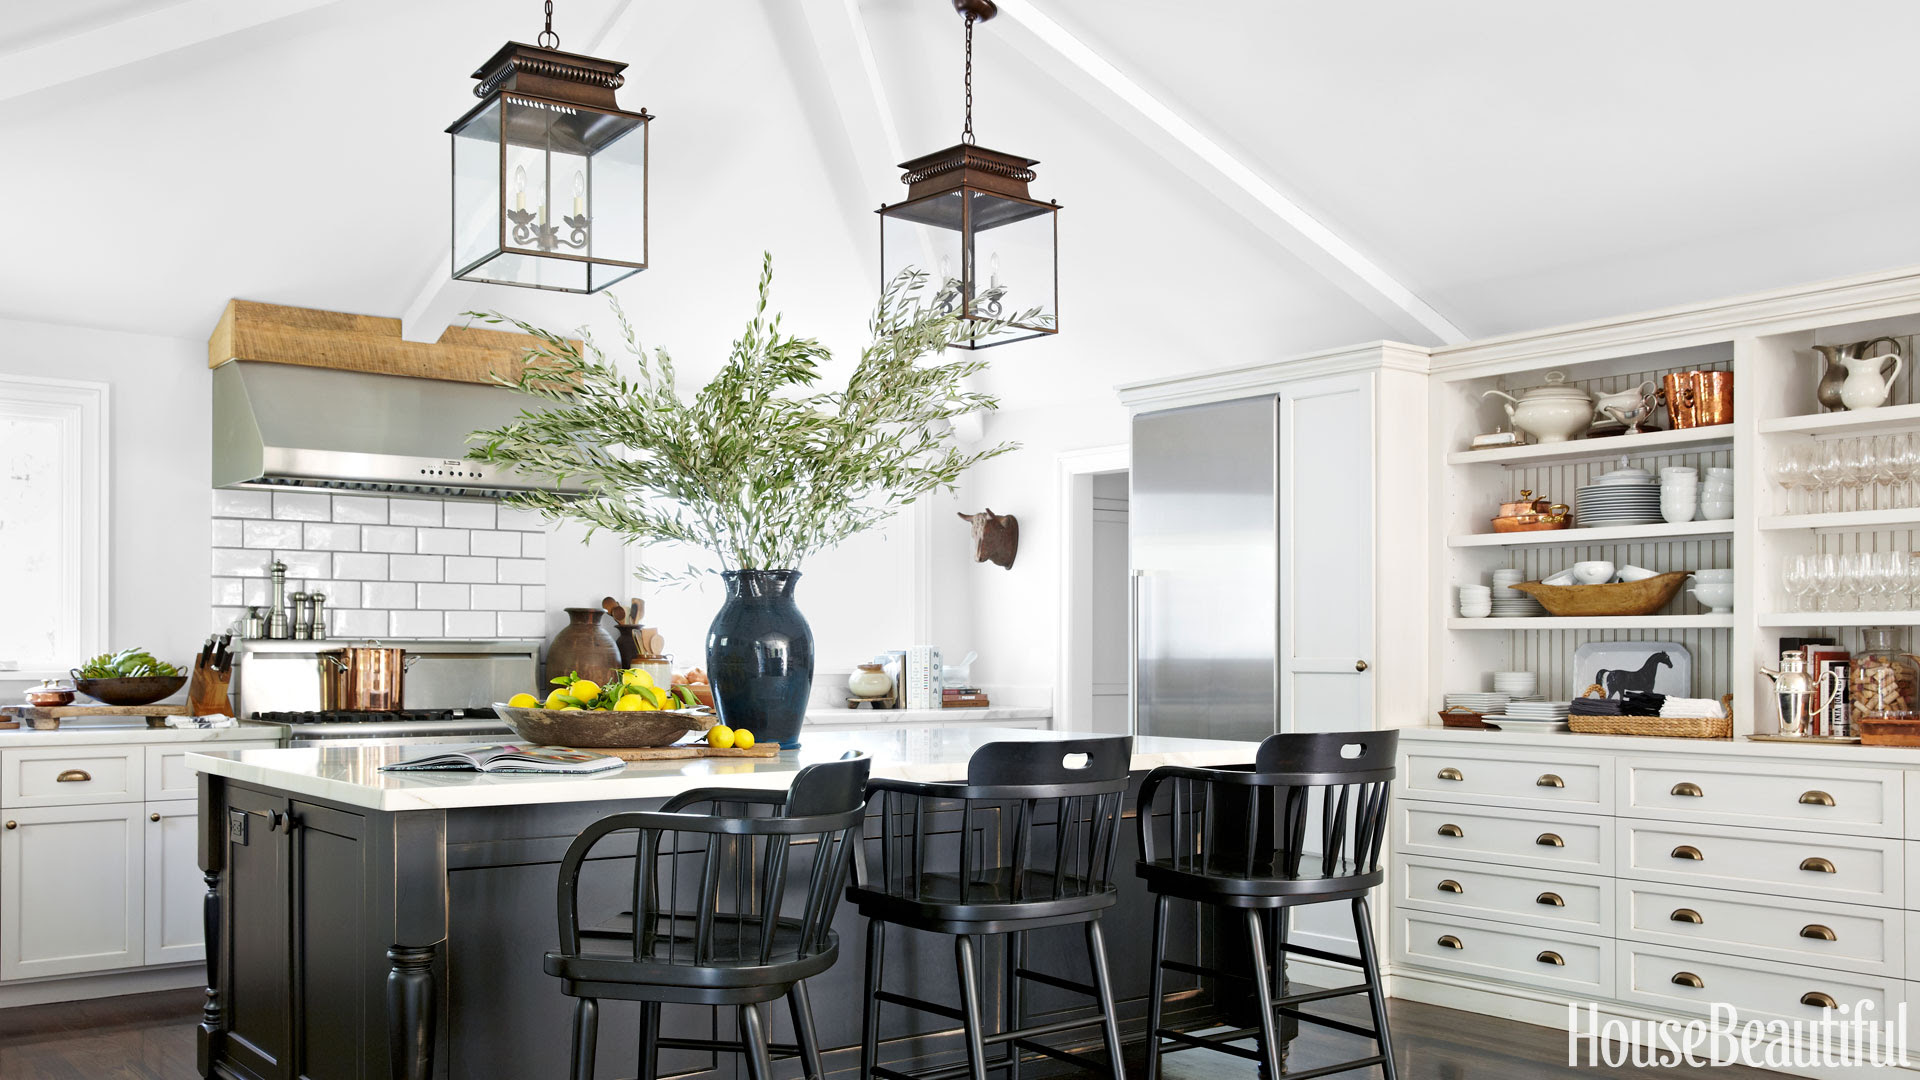 20 Kitchen Lighting Ideas - Light Fixtures for Home Kitchens